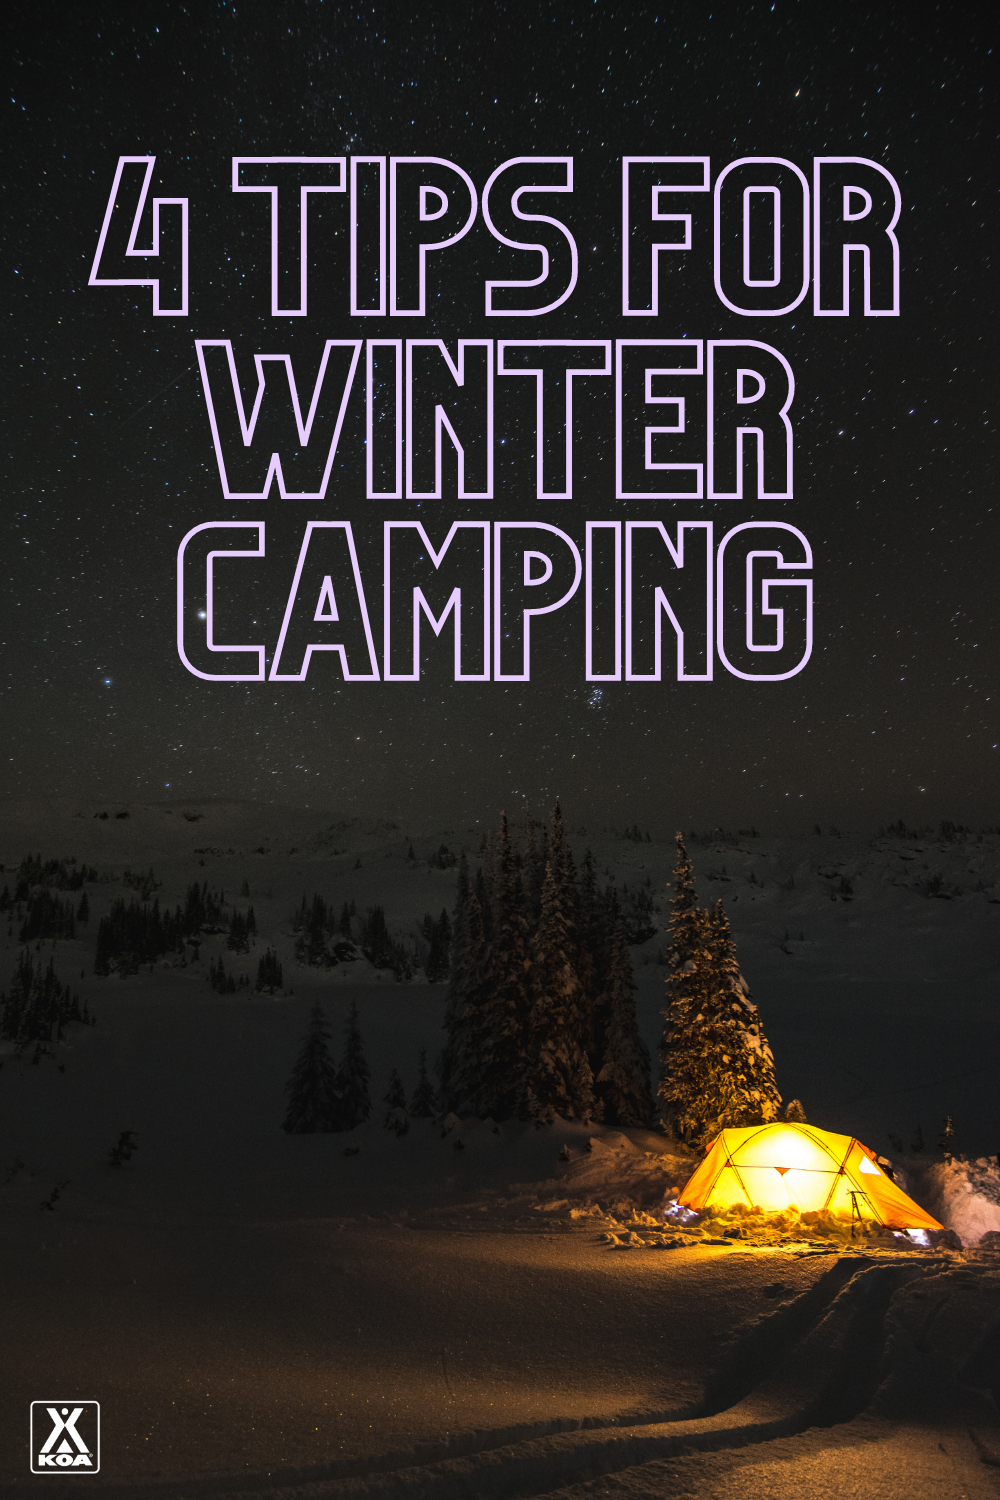 Winter camping offers a chance to experience the outdoors in a way you never have before. Enjoy fewer crowds, no bugs, and the fun of camping  during the winter. Use these tips to plan the perfect winter camping trip.